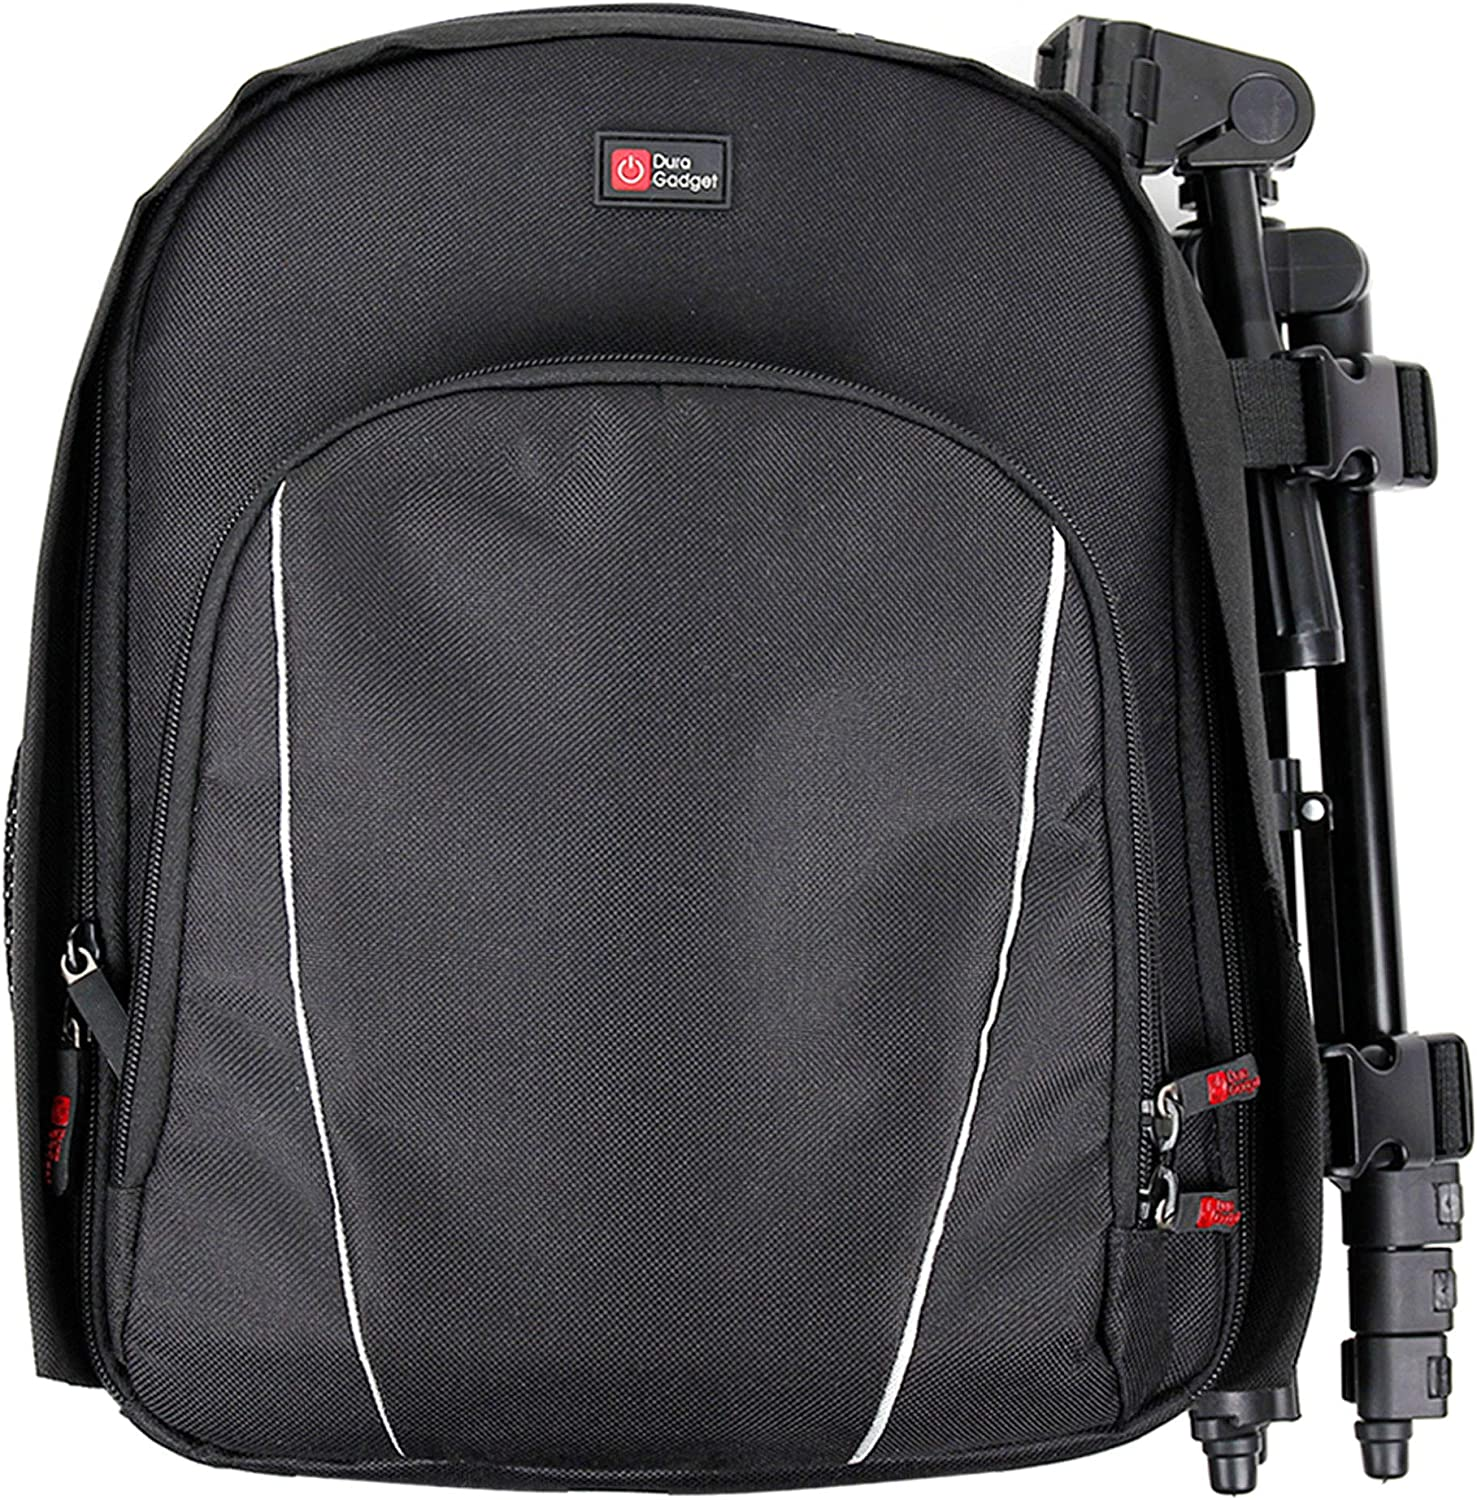 Compatible with the Sony FDR-AXP33 DURAGADGET Rucksack w//Adjustable Padded Interior /& Raincover